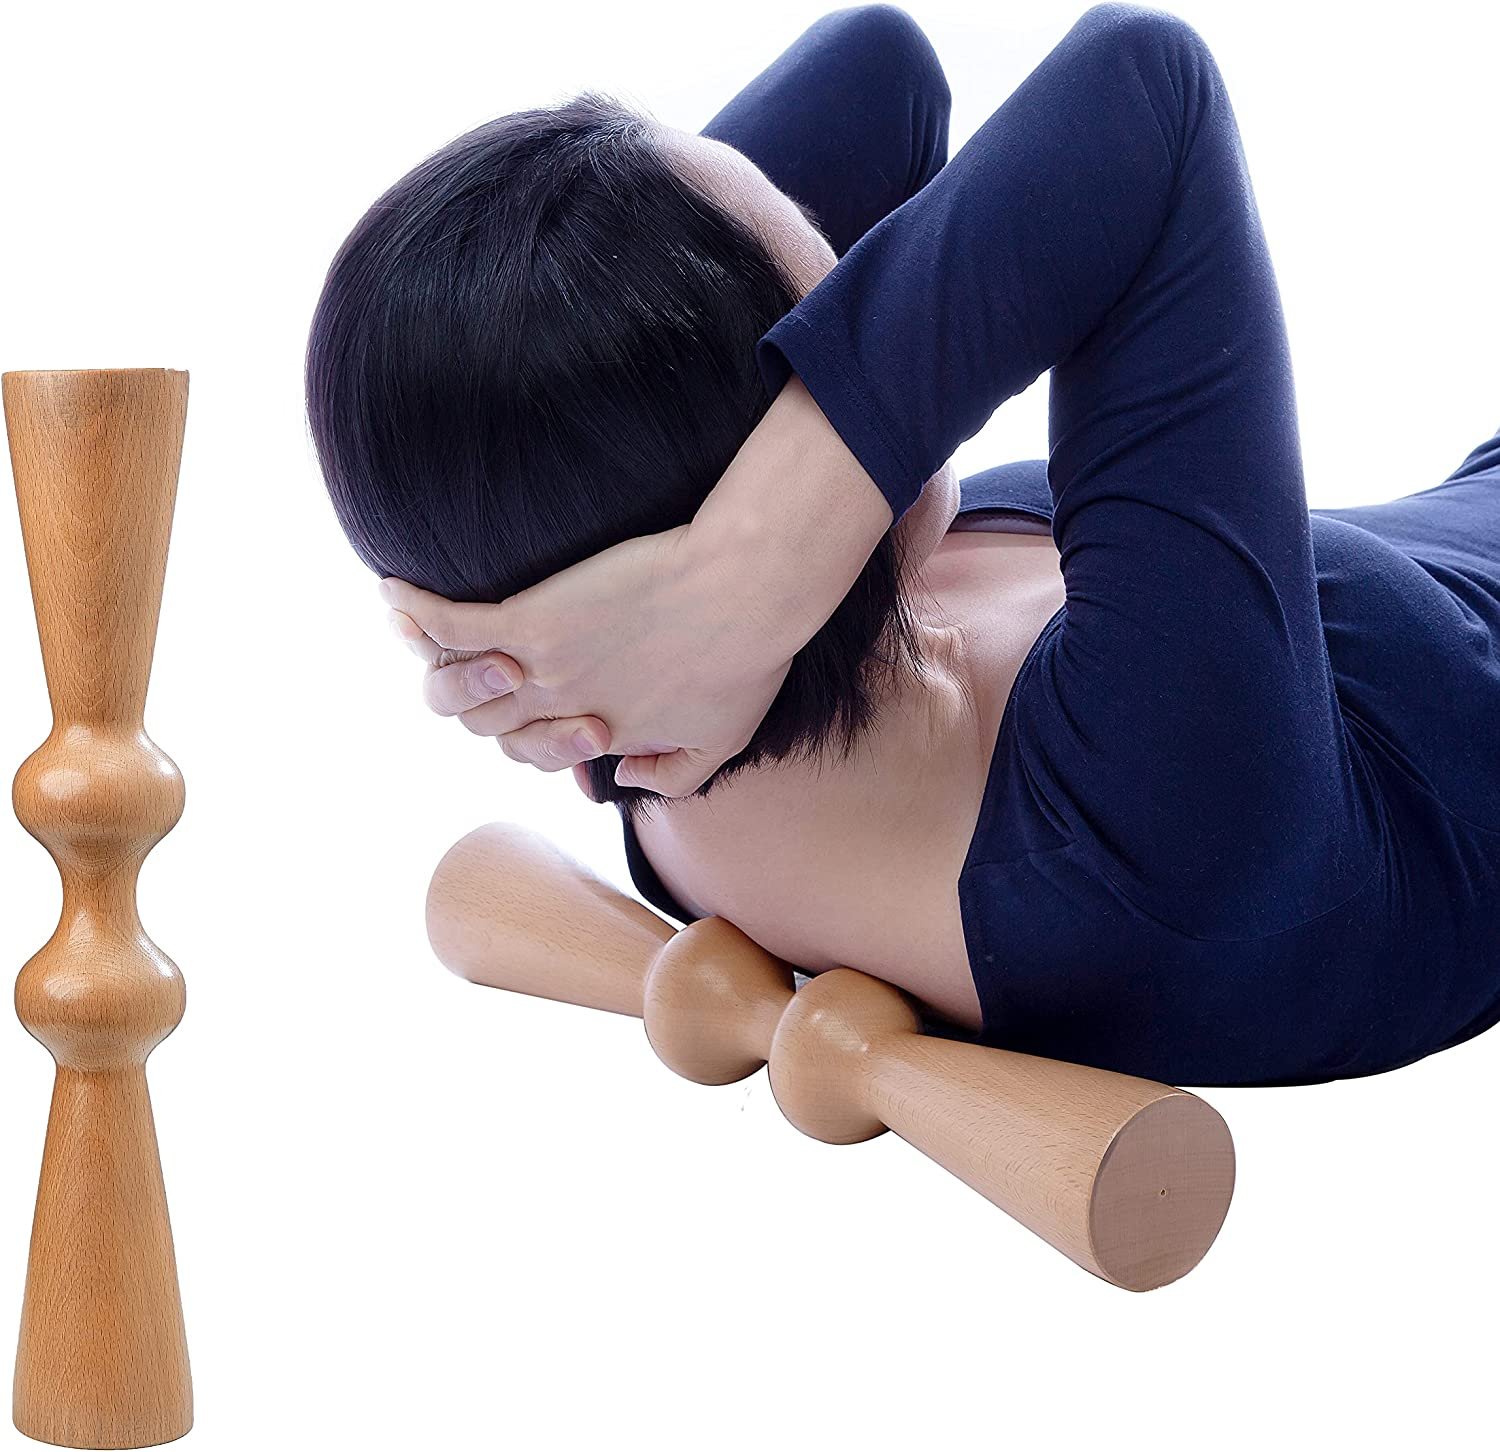 Hovom Wood Muscle Release Tool Back Ranking integrated 1st place High order Roller ma Massager